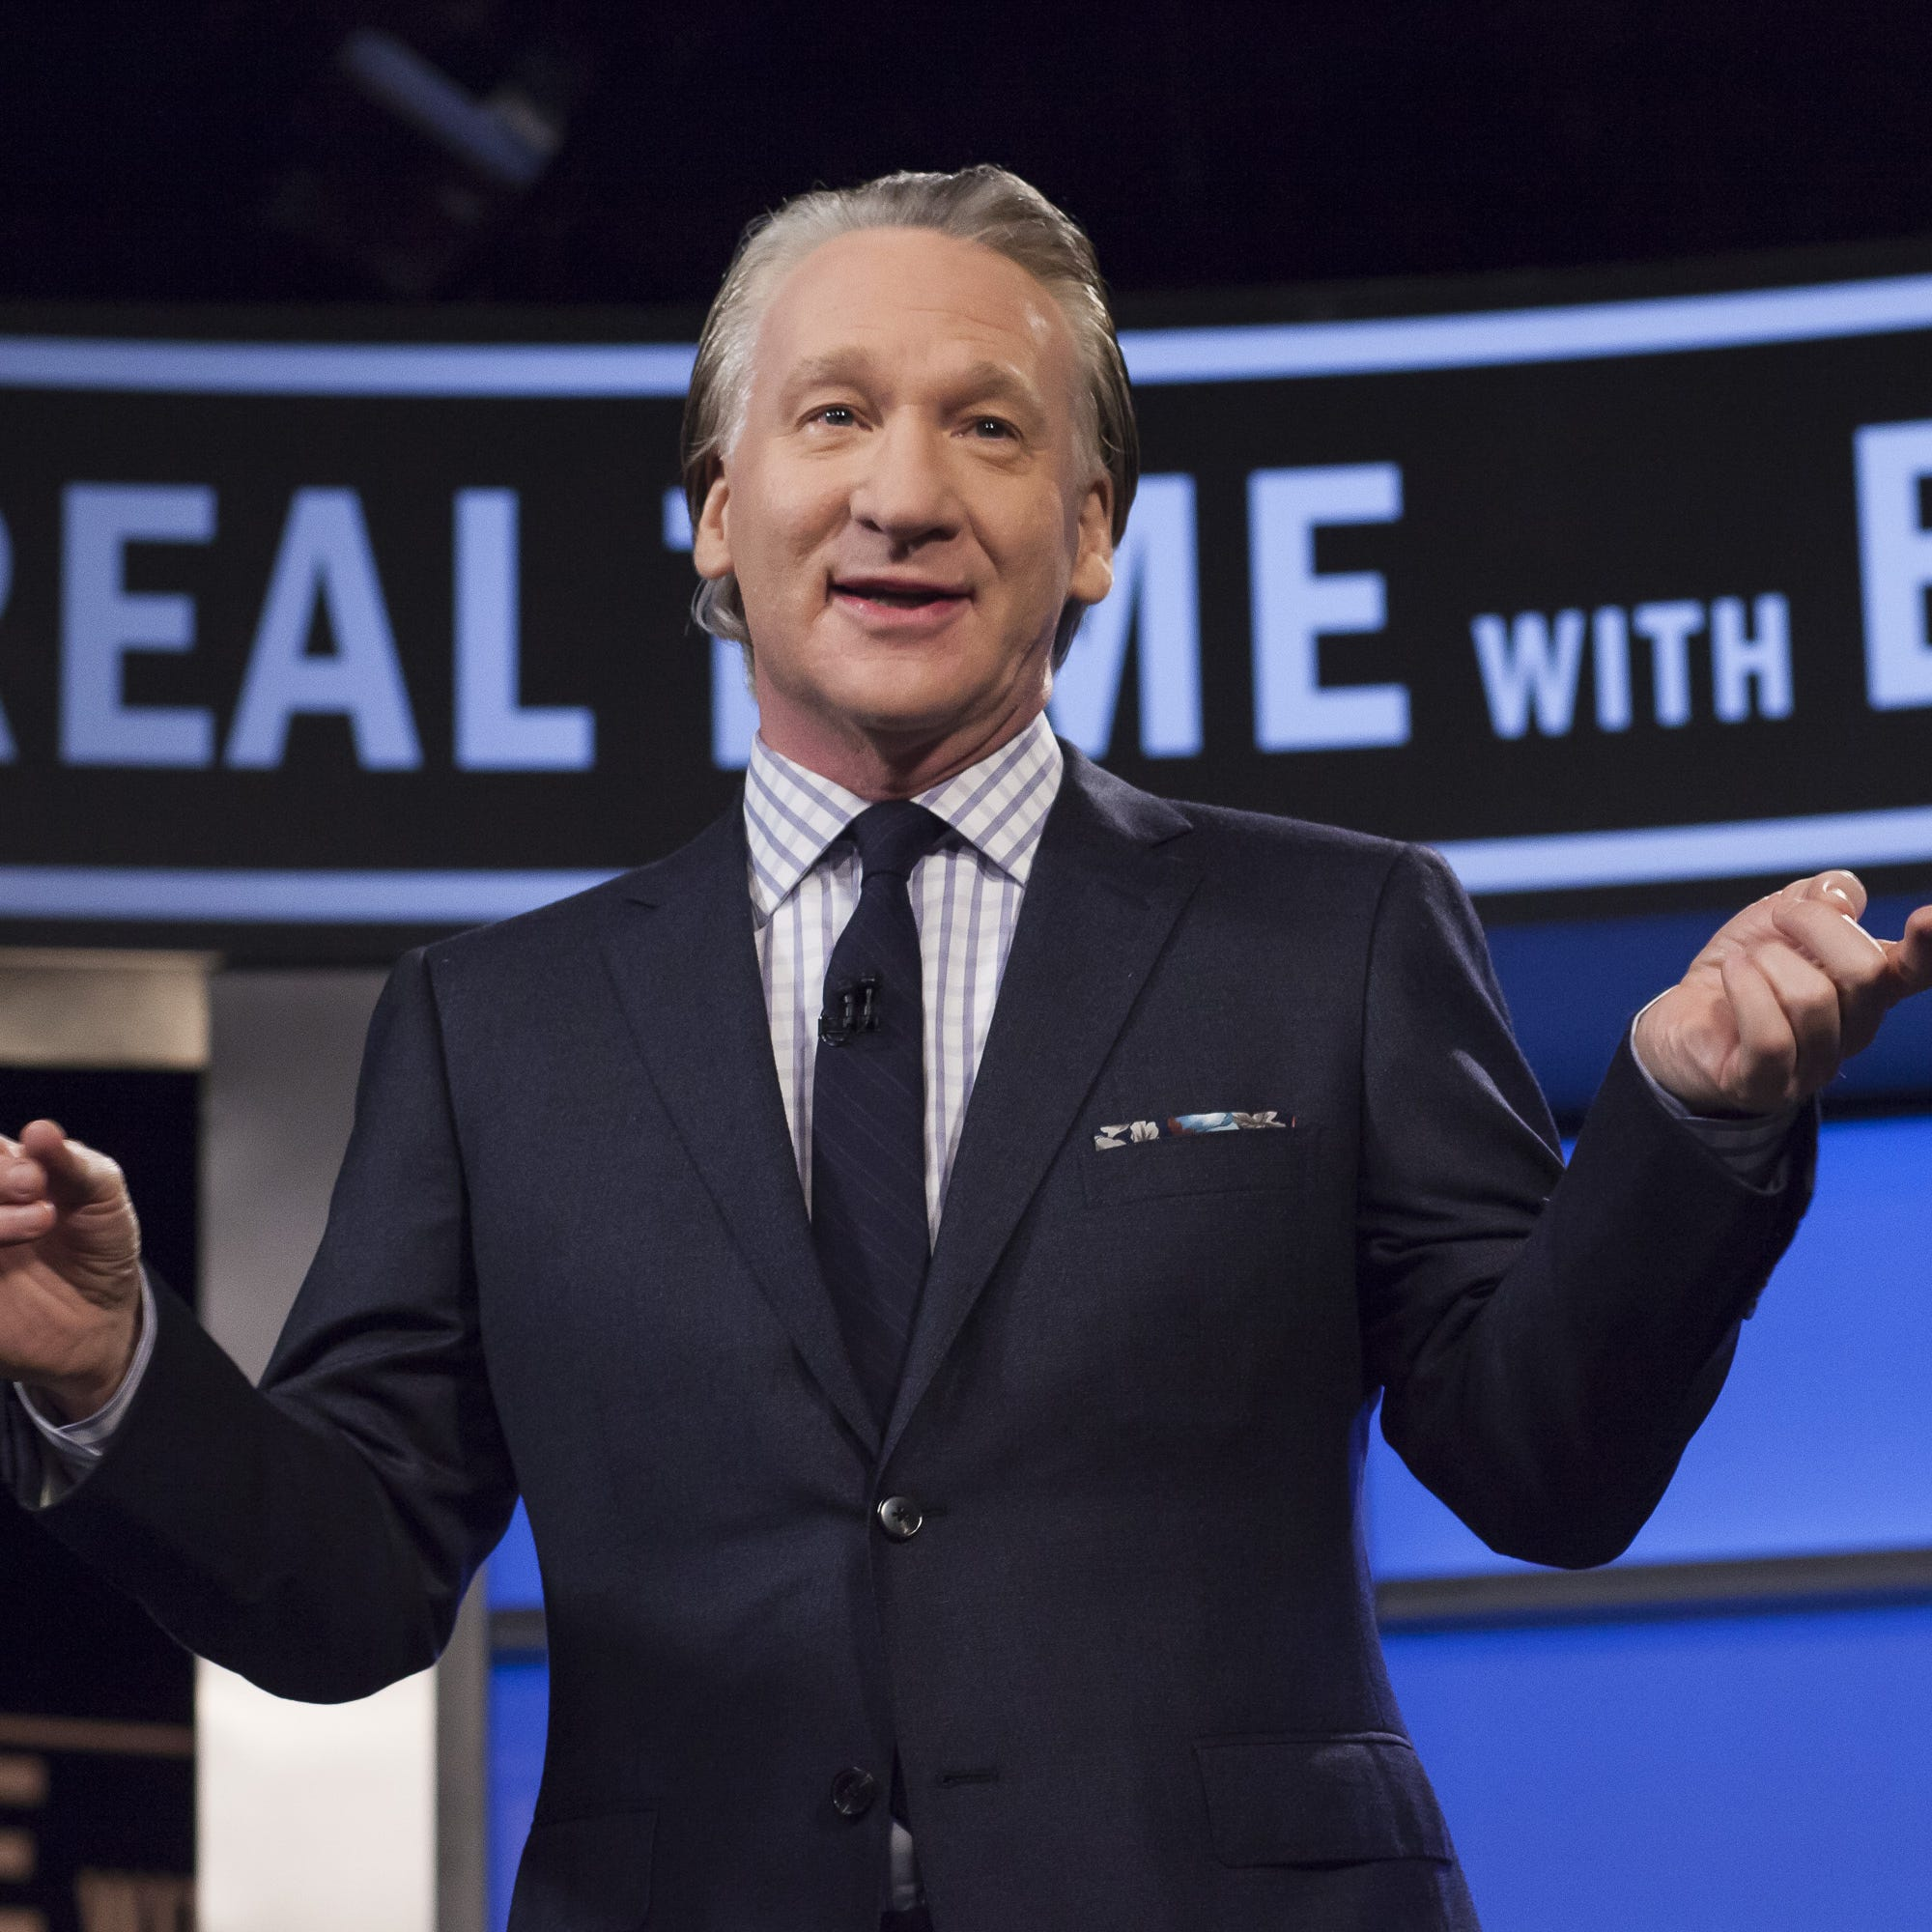 Letter: Bill Maher challenges alma mater Cornell over deer hunting at Sapsucker Woods